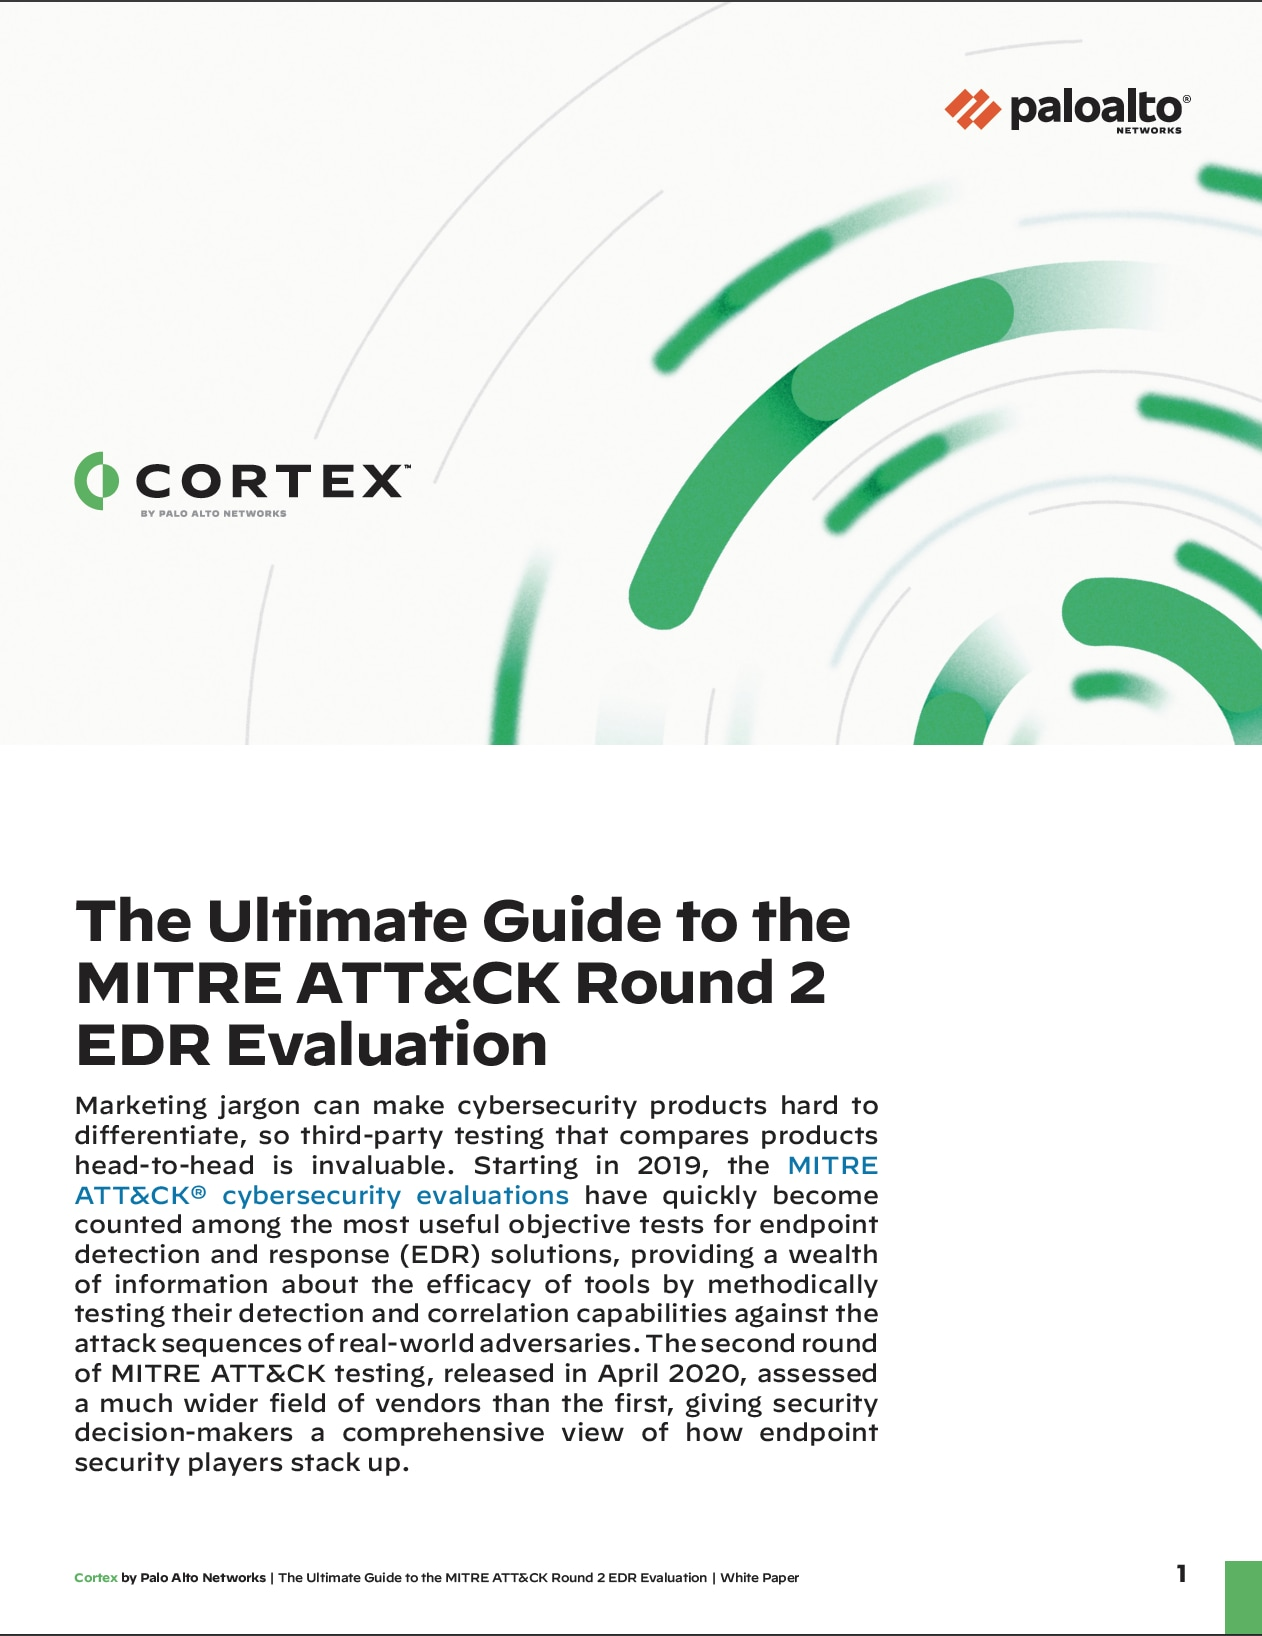 The Ultimate Guide to the MITRE ATT&CK Round 2 EDR Evaluation